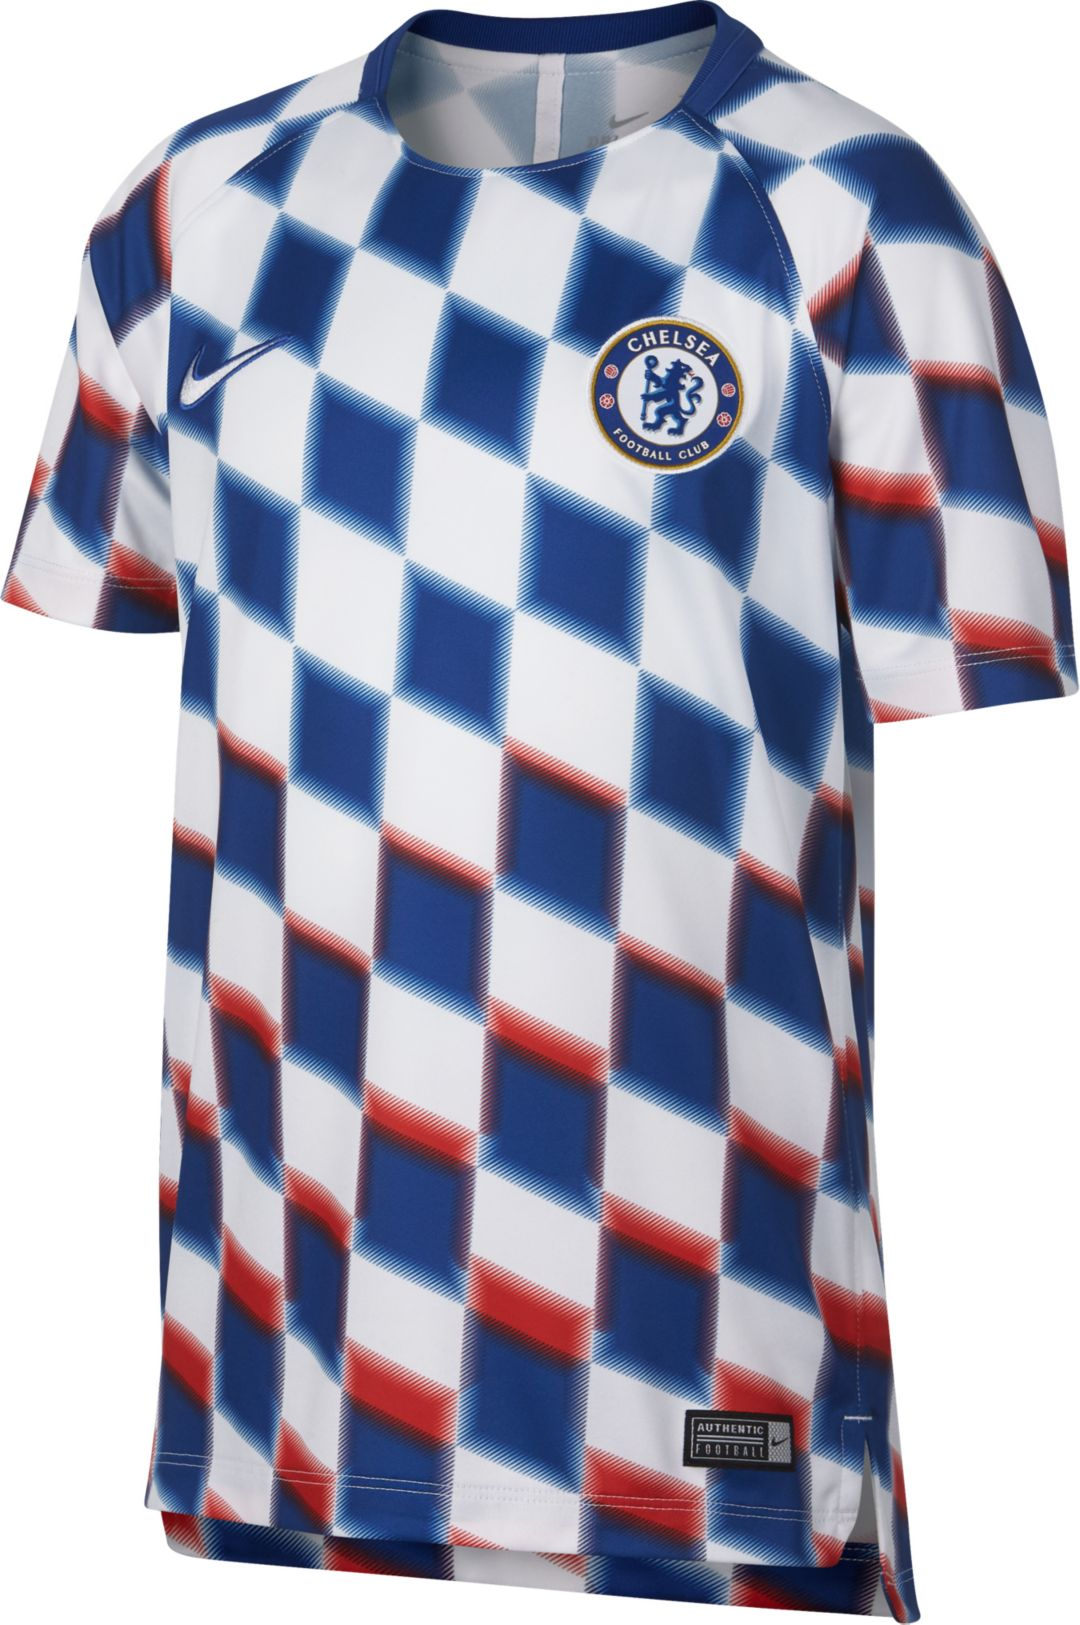 check out dde95 ac97c Nike Youth Chelsea FC Checkered Prematch Top